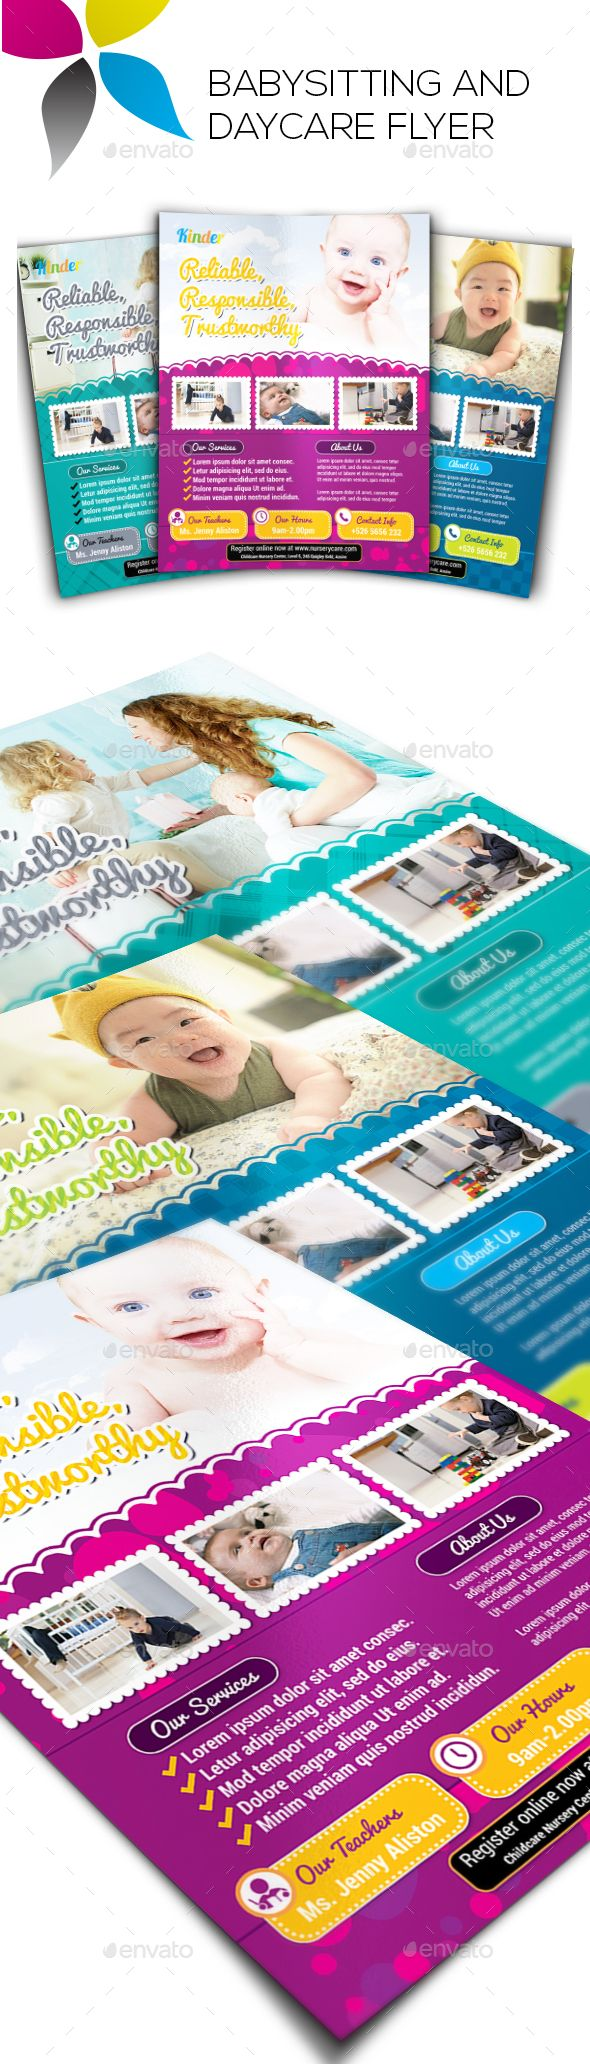 17 best ideas about babysitting flyers babysitting babysitting and daycare flyer design template corporate flyer template psd here